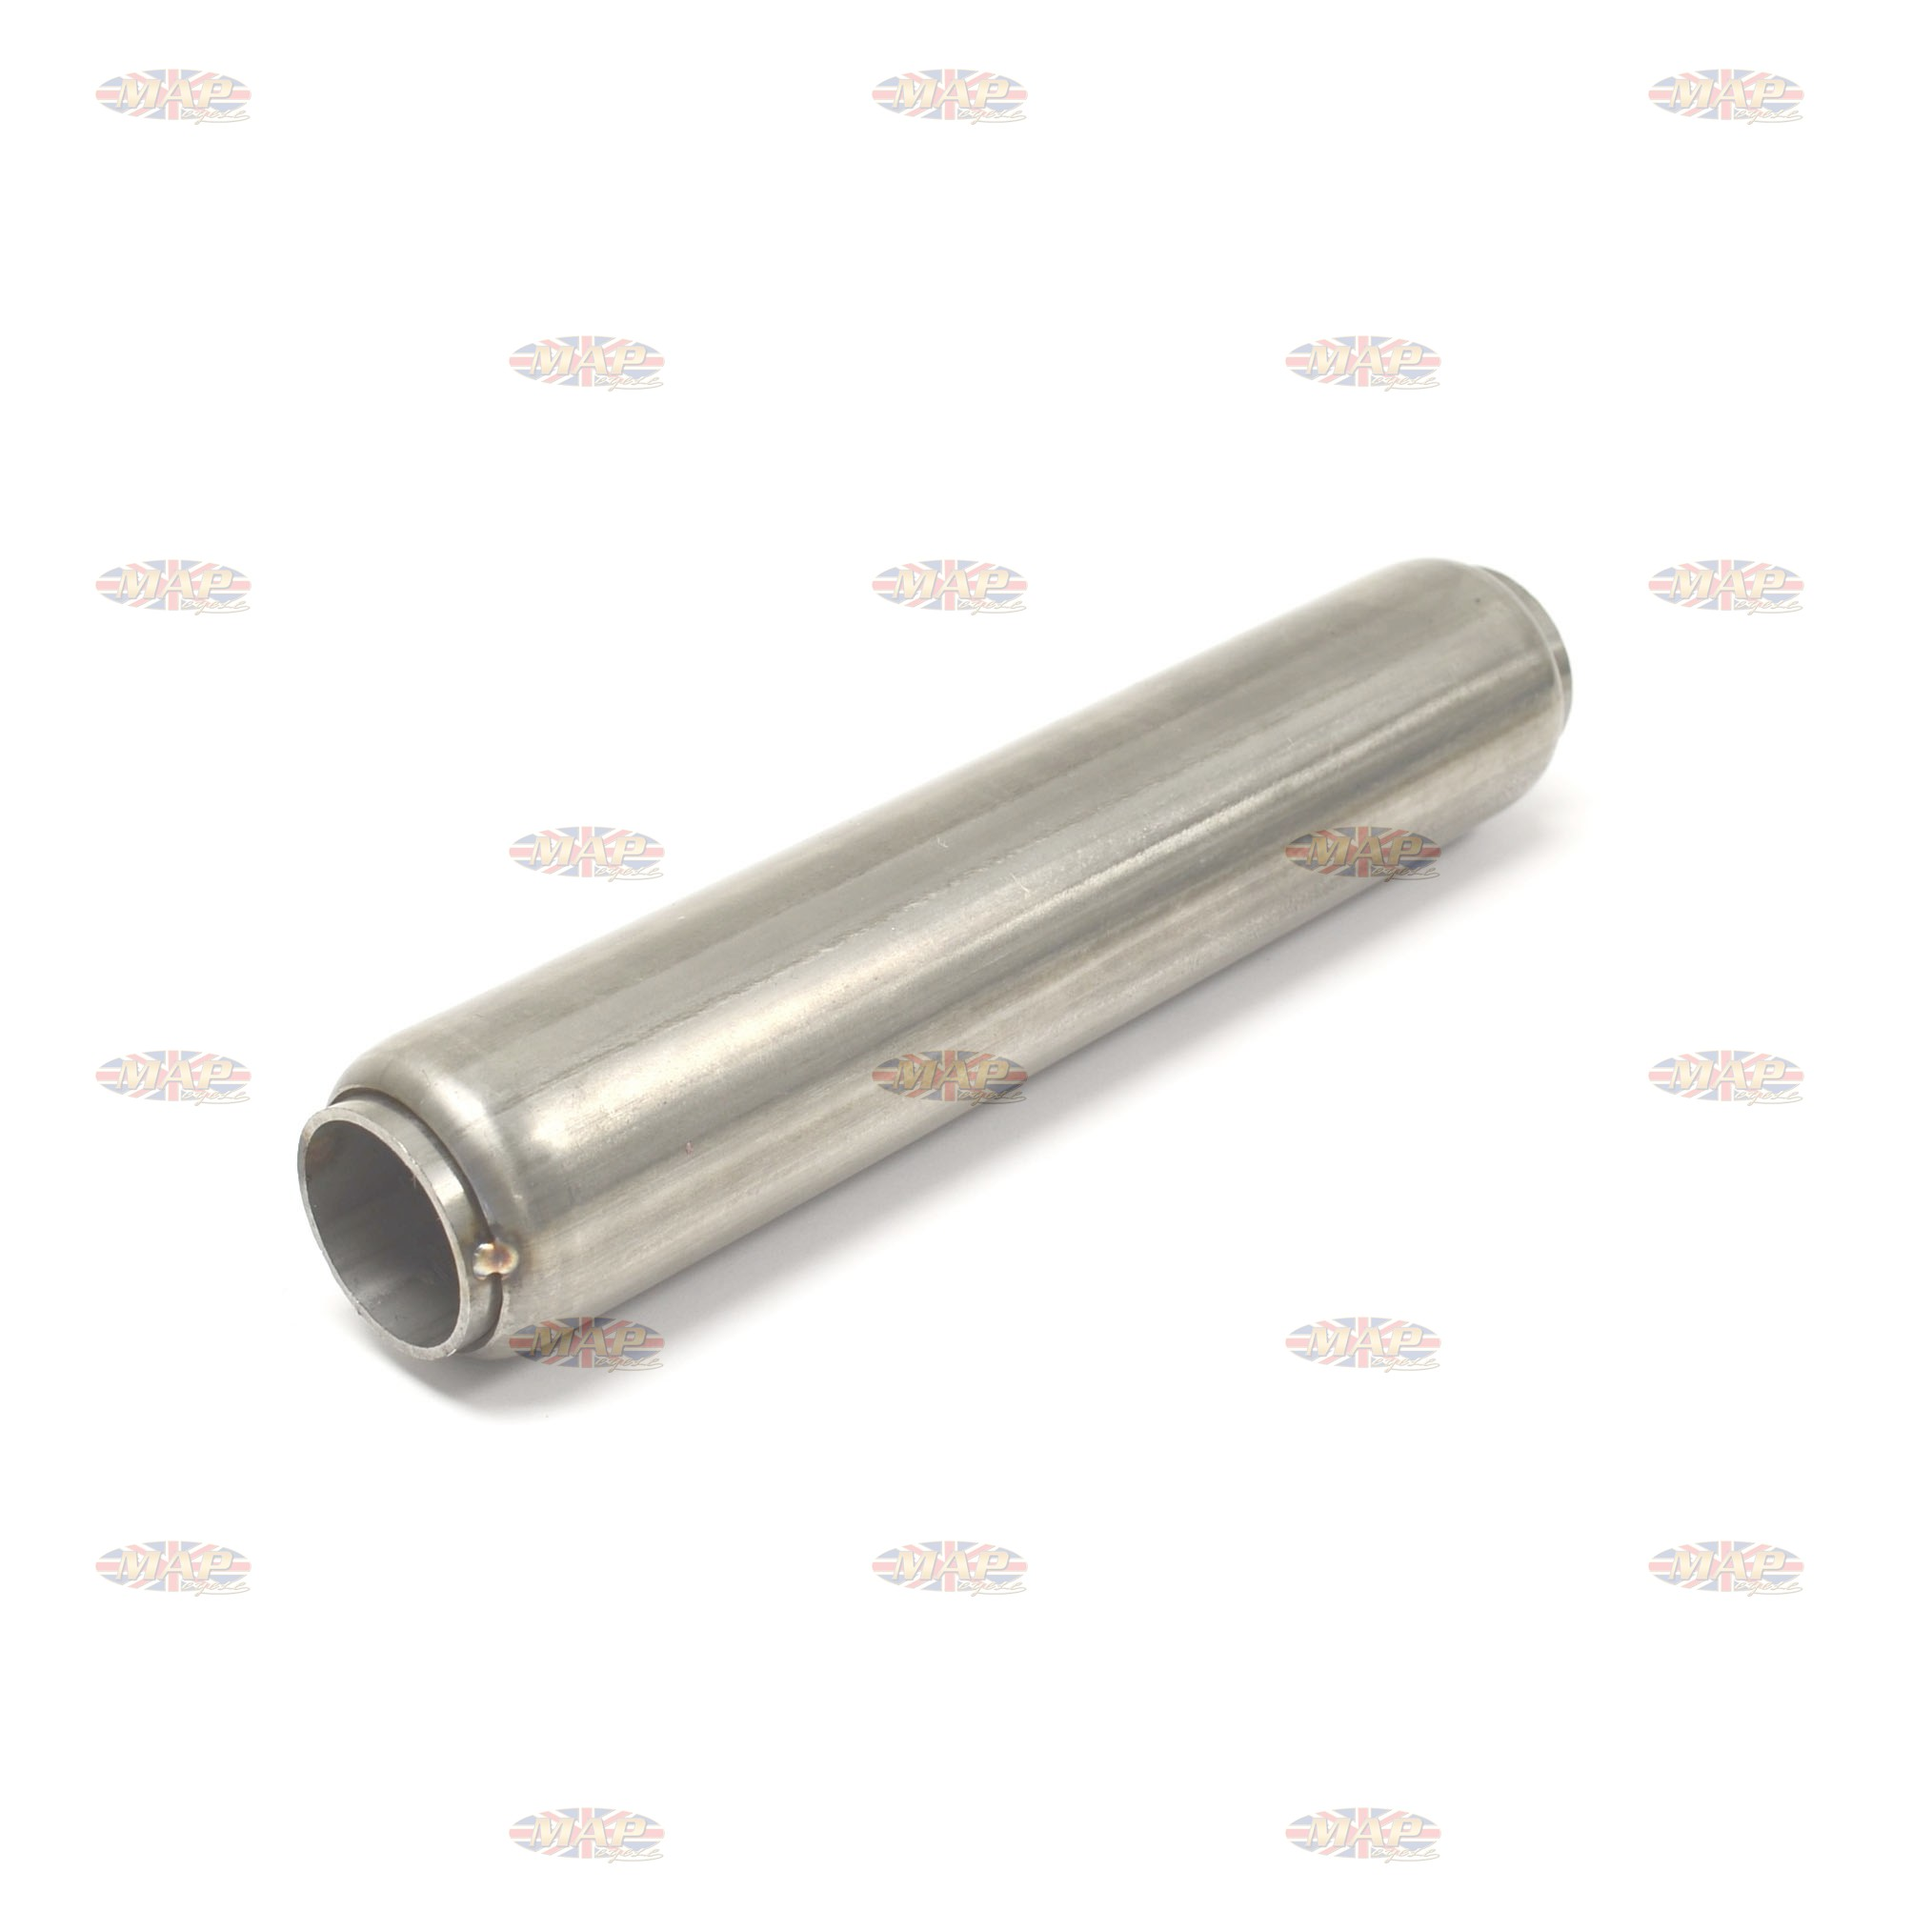 "Stainless Steel Glass Pack Exhaust Pipe Insert Baffle Muffler 2"" 009-0178"